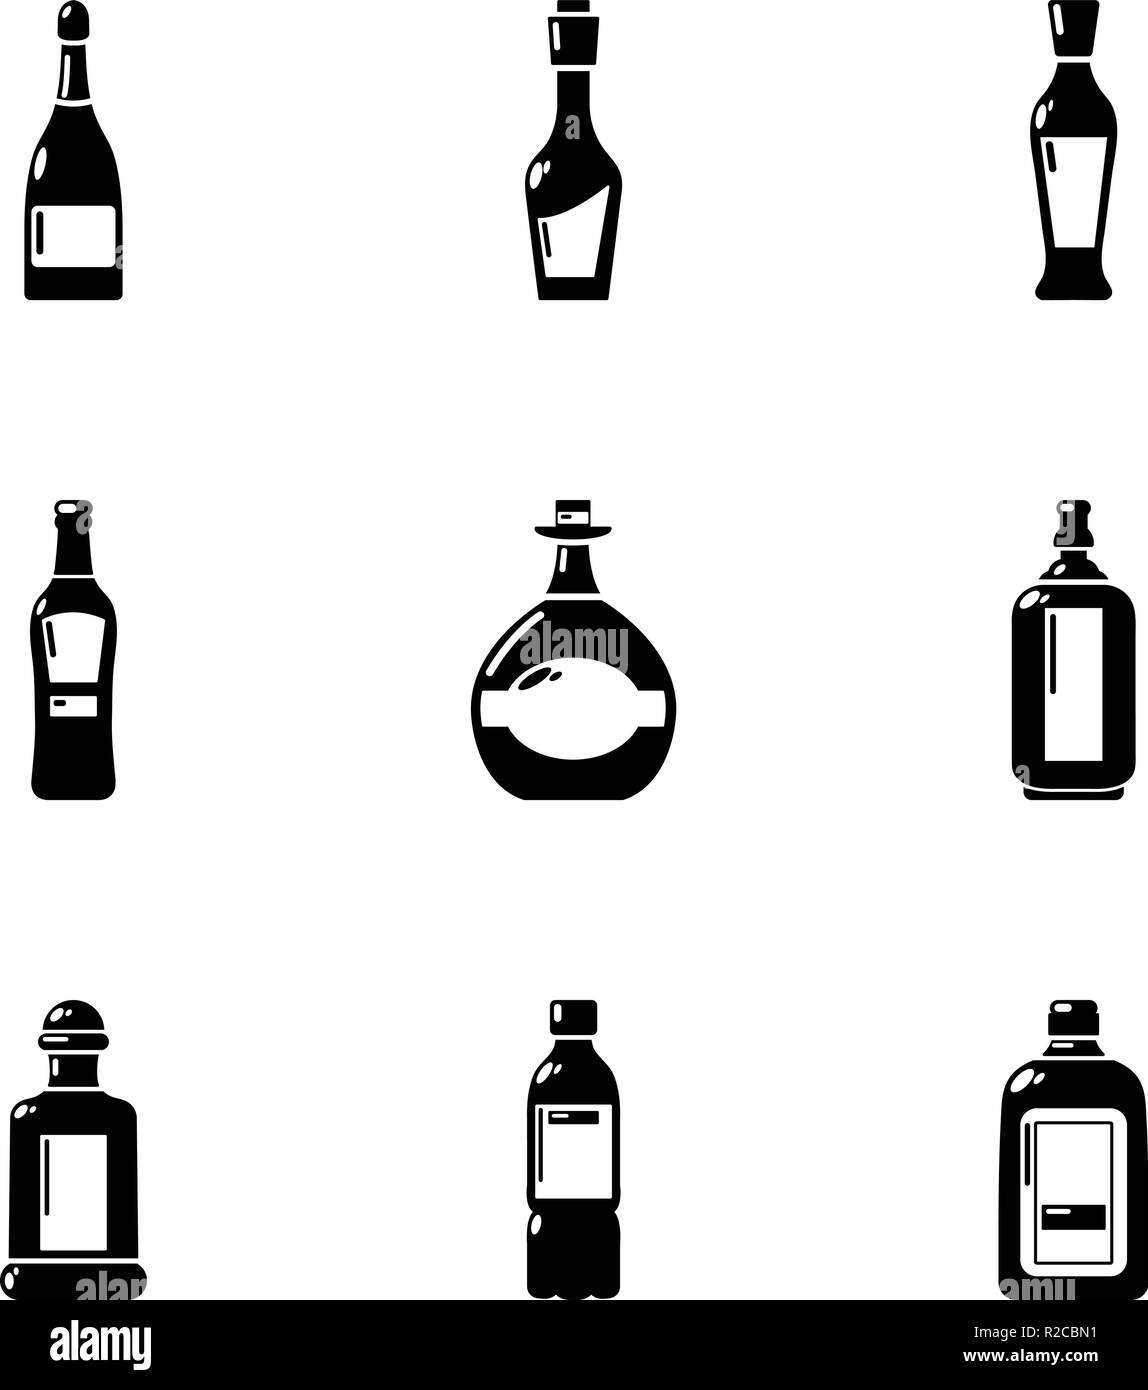 Blister pack icons set, simple style - Stock Image